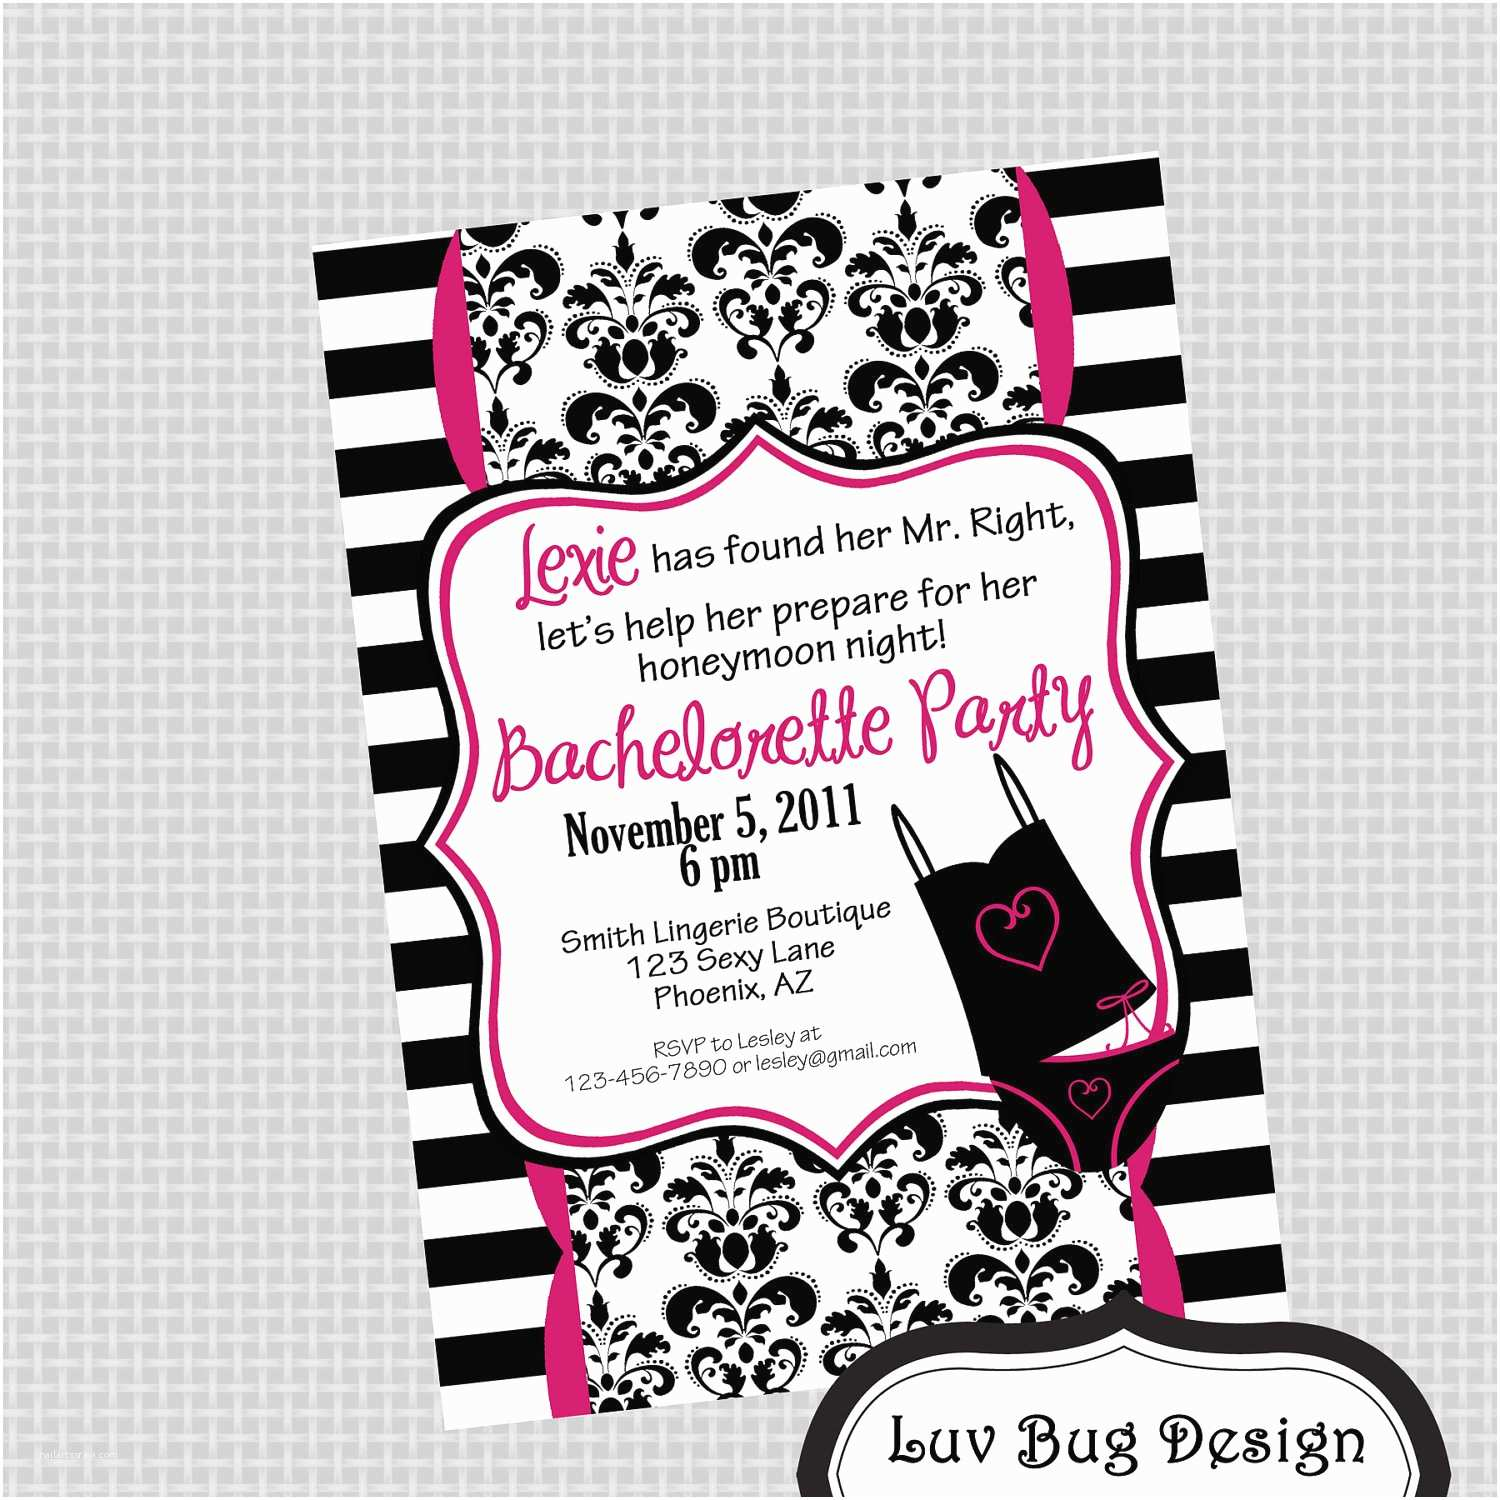 Bachelorette Party Invitations Printable Elegant Bachelorette Party Invitation by